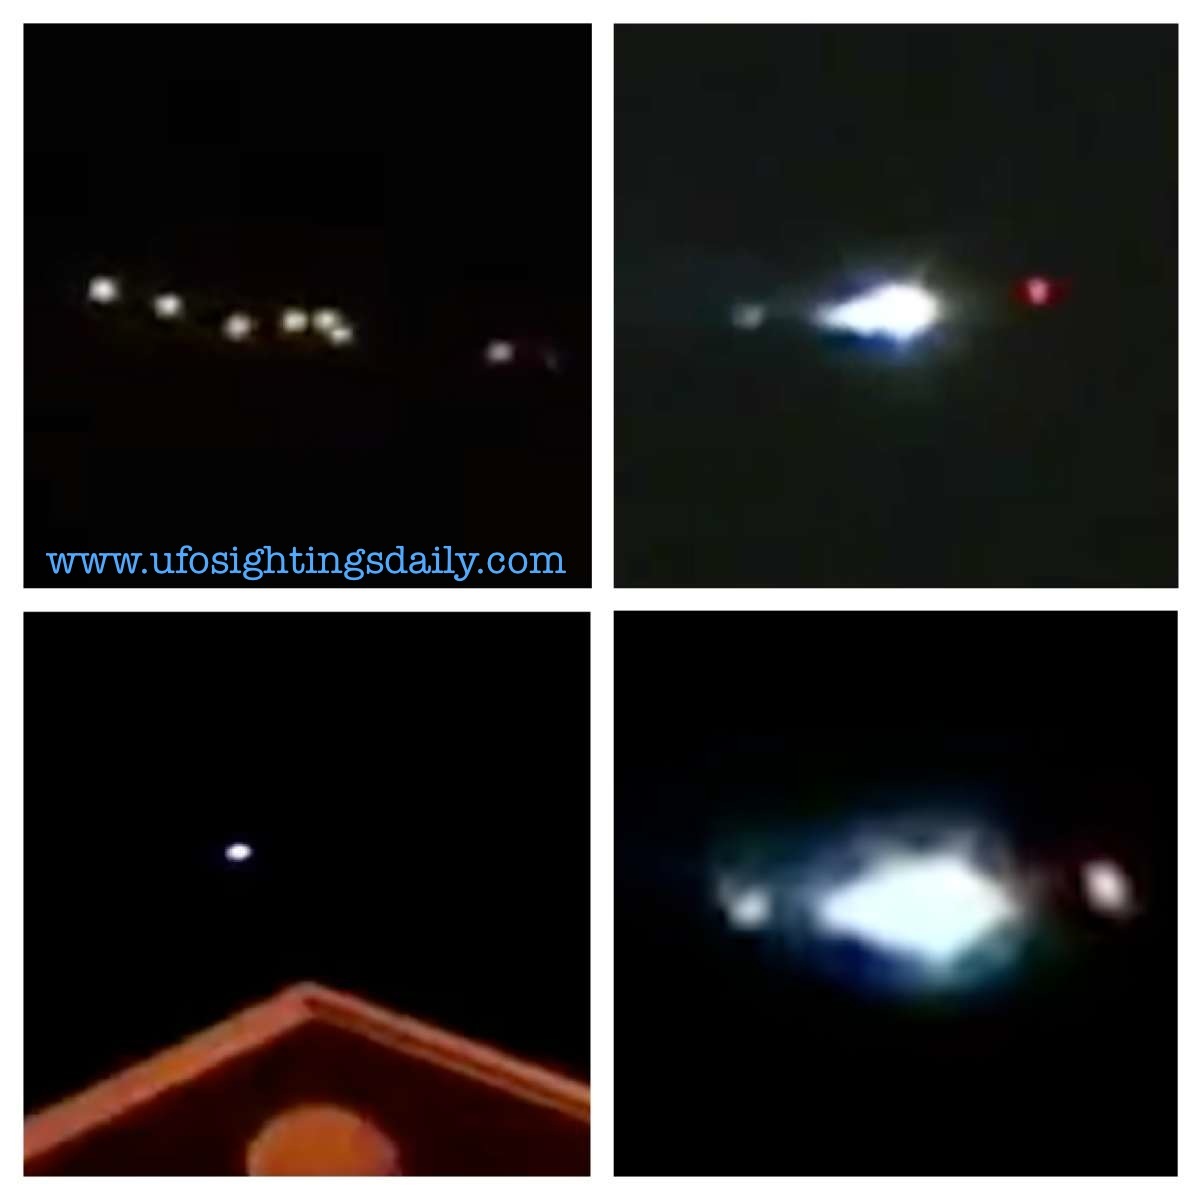 UFO SIGHTINGS DAILY: UFOs Hovering Over Homes In North ...